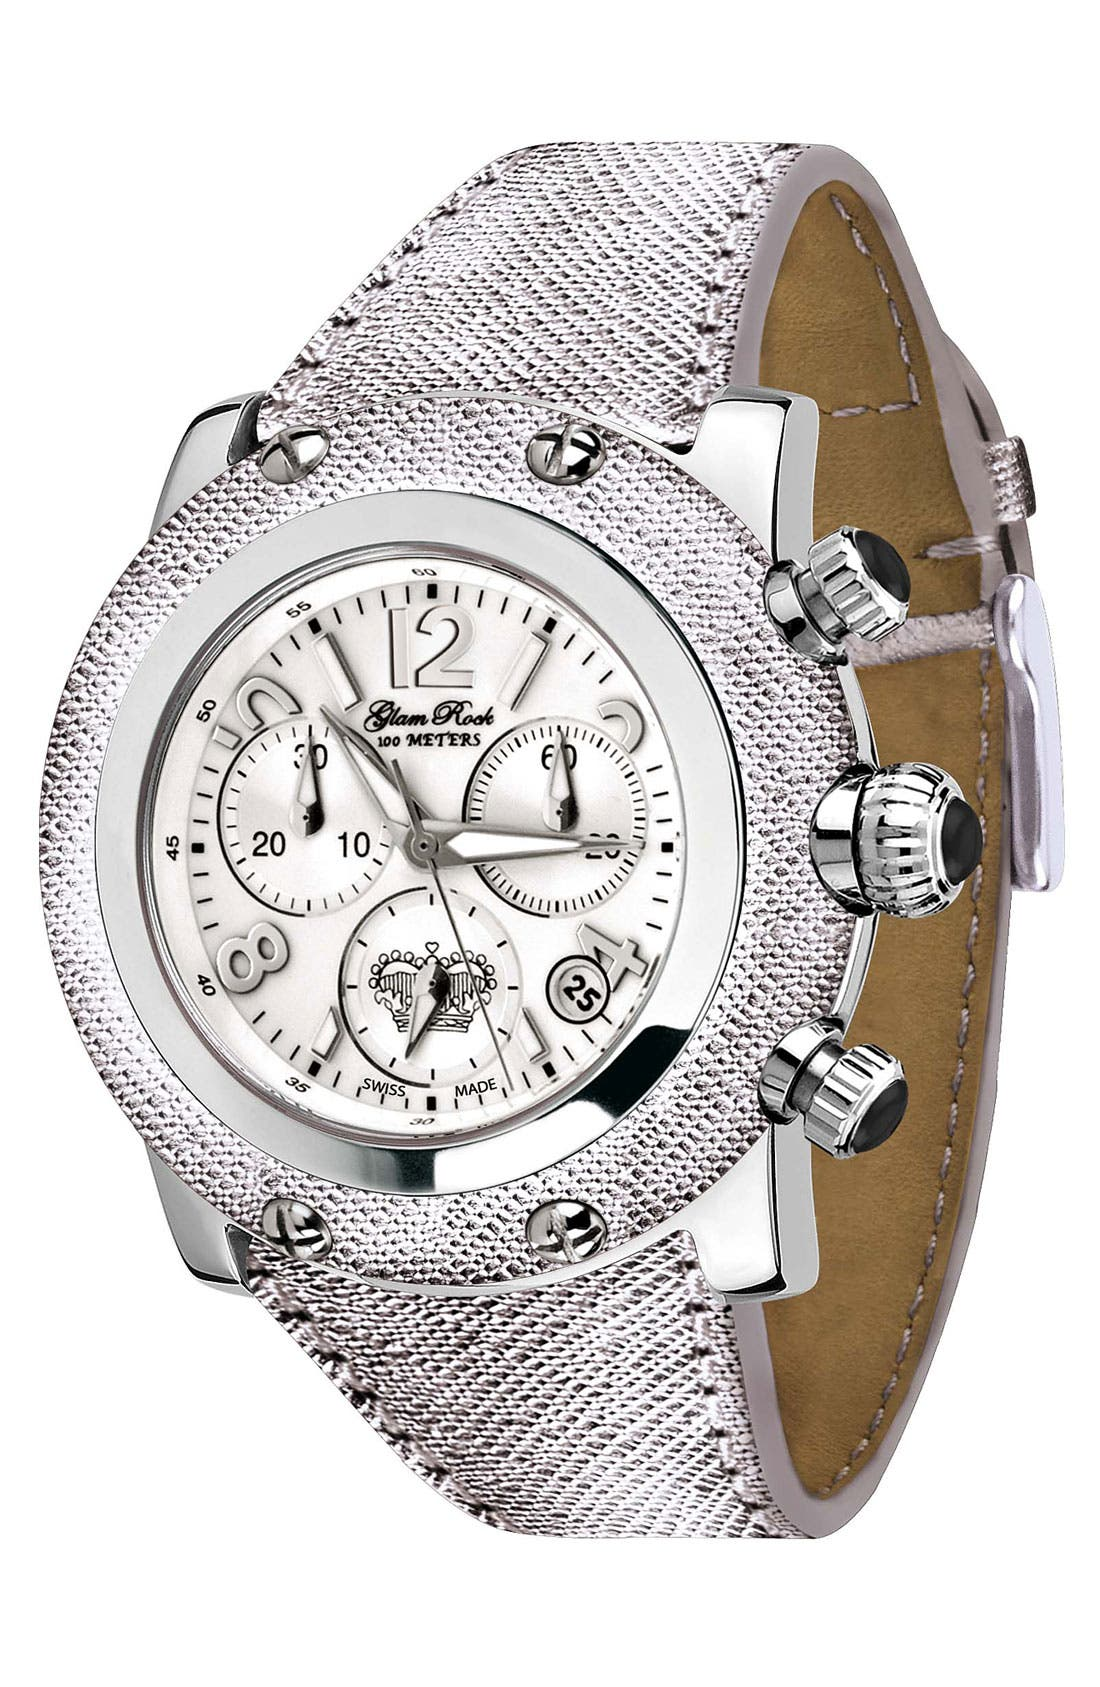 Alternate Image 1 Selected - Glam Rock 'Miami' Leather Strap Chronograph Watch